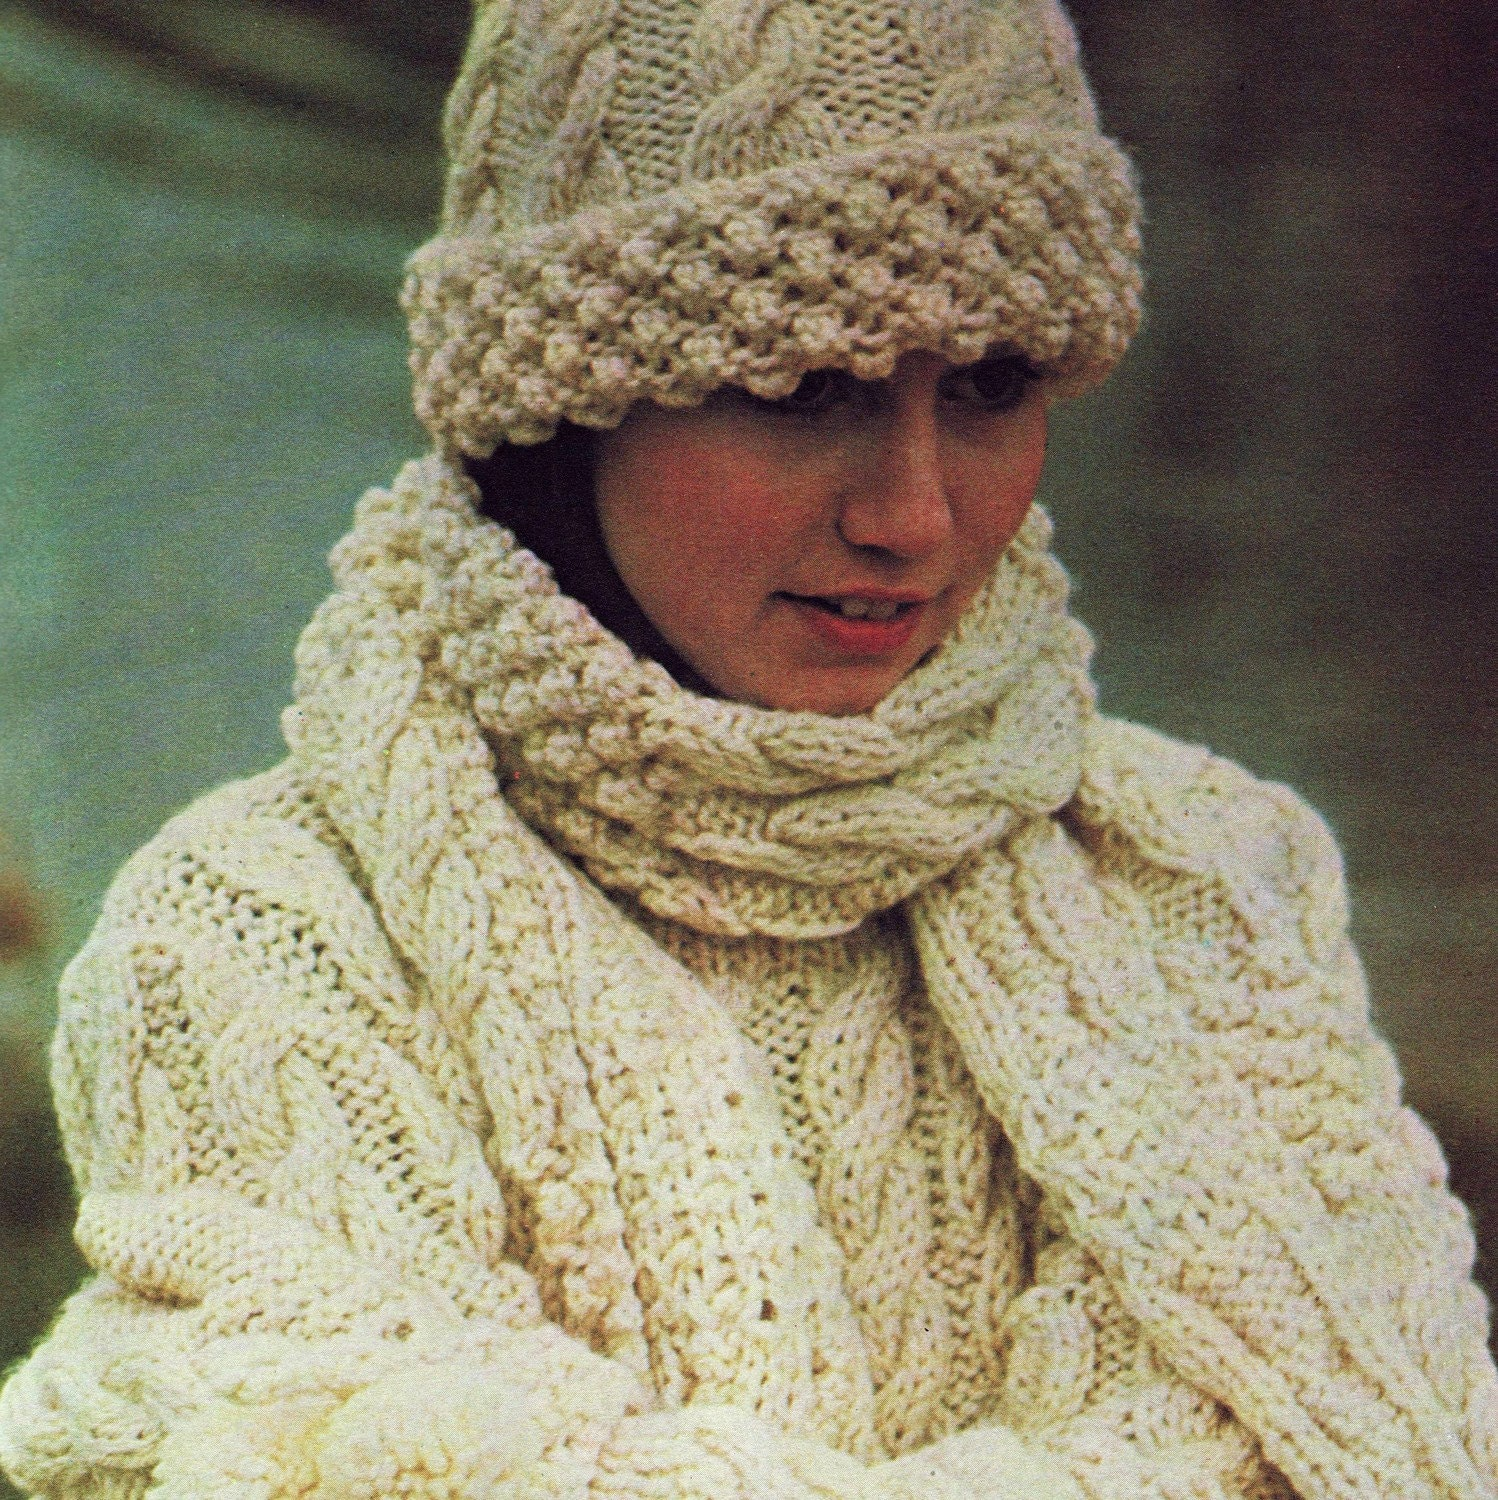 Knitting Patterns Scarves And Hats : HAT SCARF KNITTING PATTERNS   Free Patterns